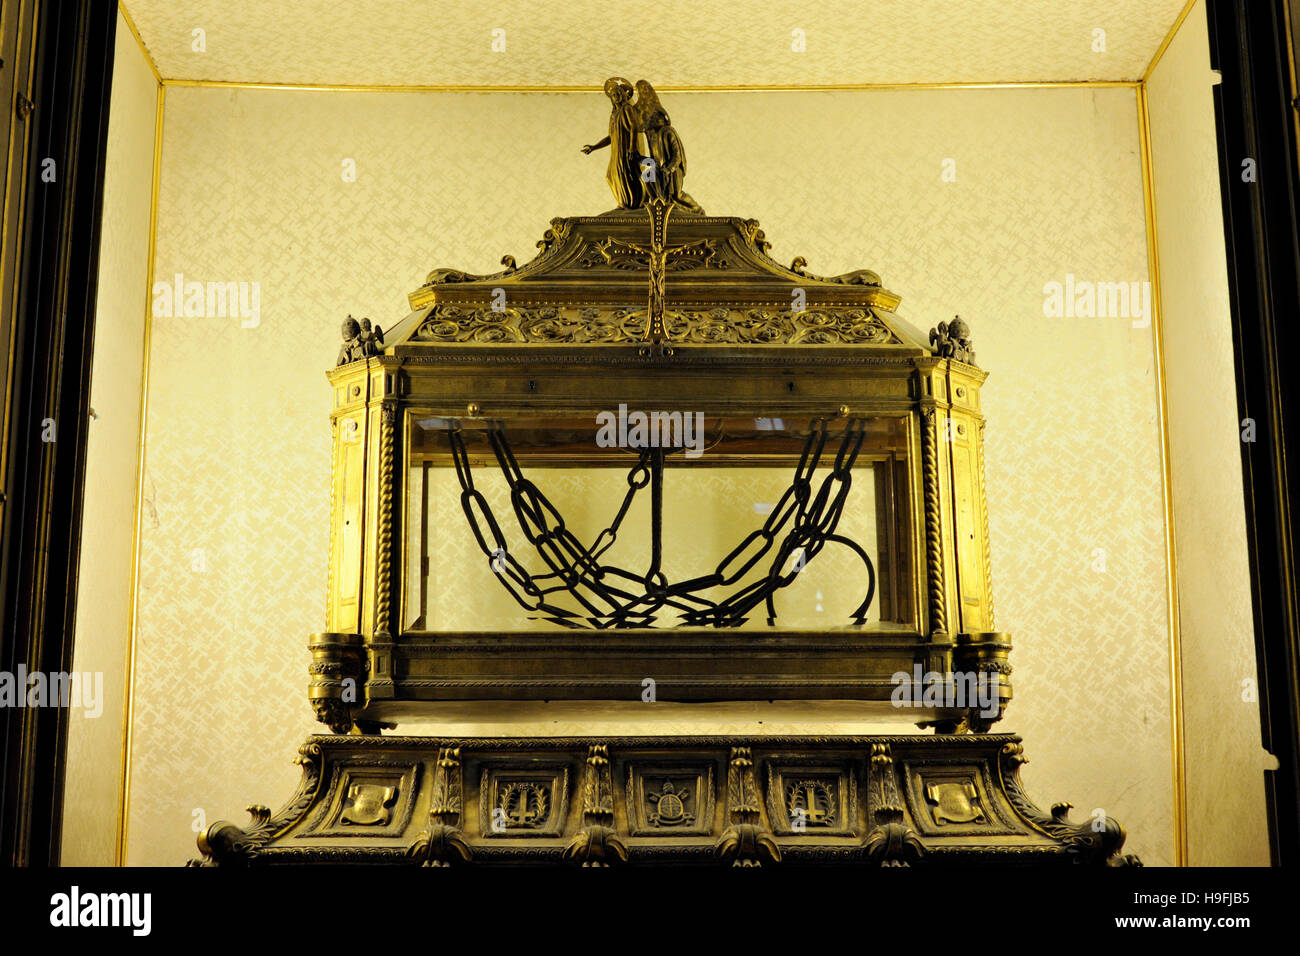 italy, rome, basilica of San Pietro in Vincoli (St. Peter in Chains), reliquary containing the chains of St. Peter Stock Photo